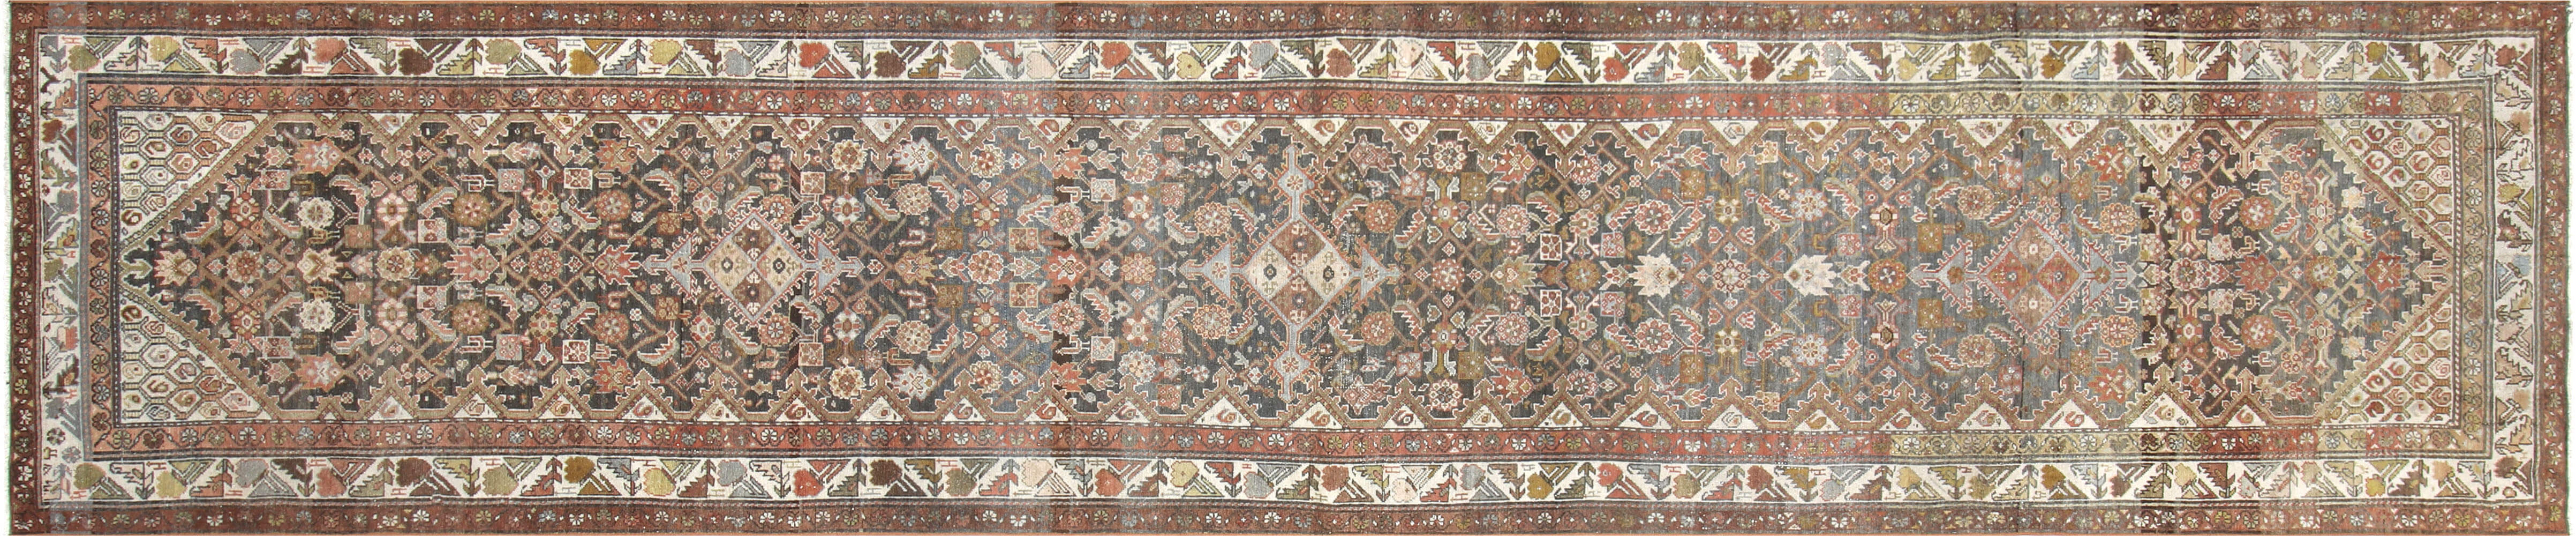 "Semi Antique Persian Melayer Runner - 3'5"" x 16'3"""